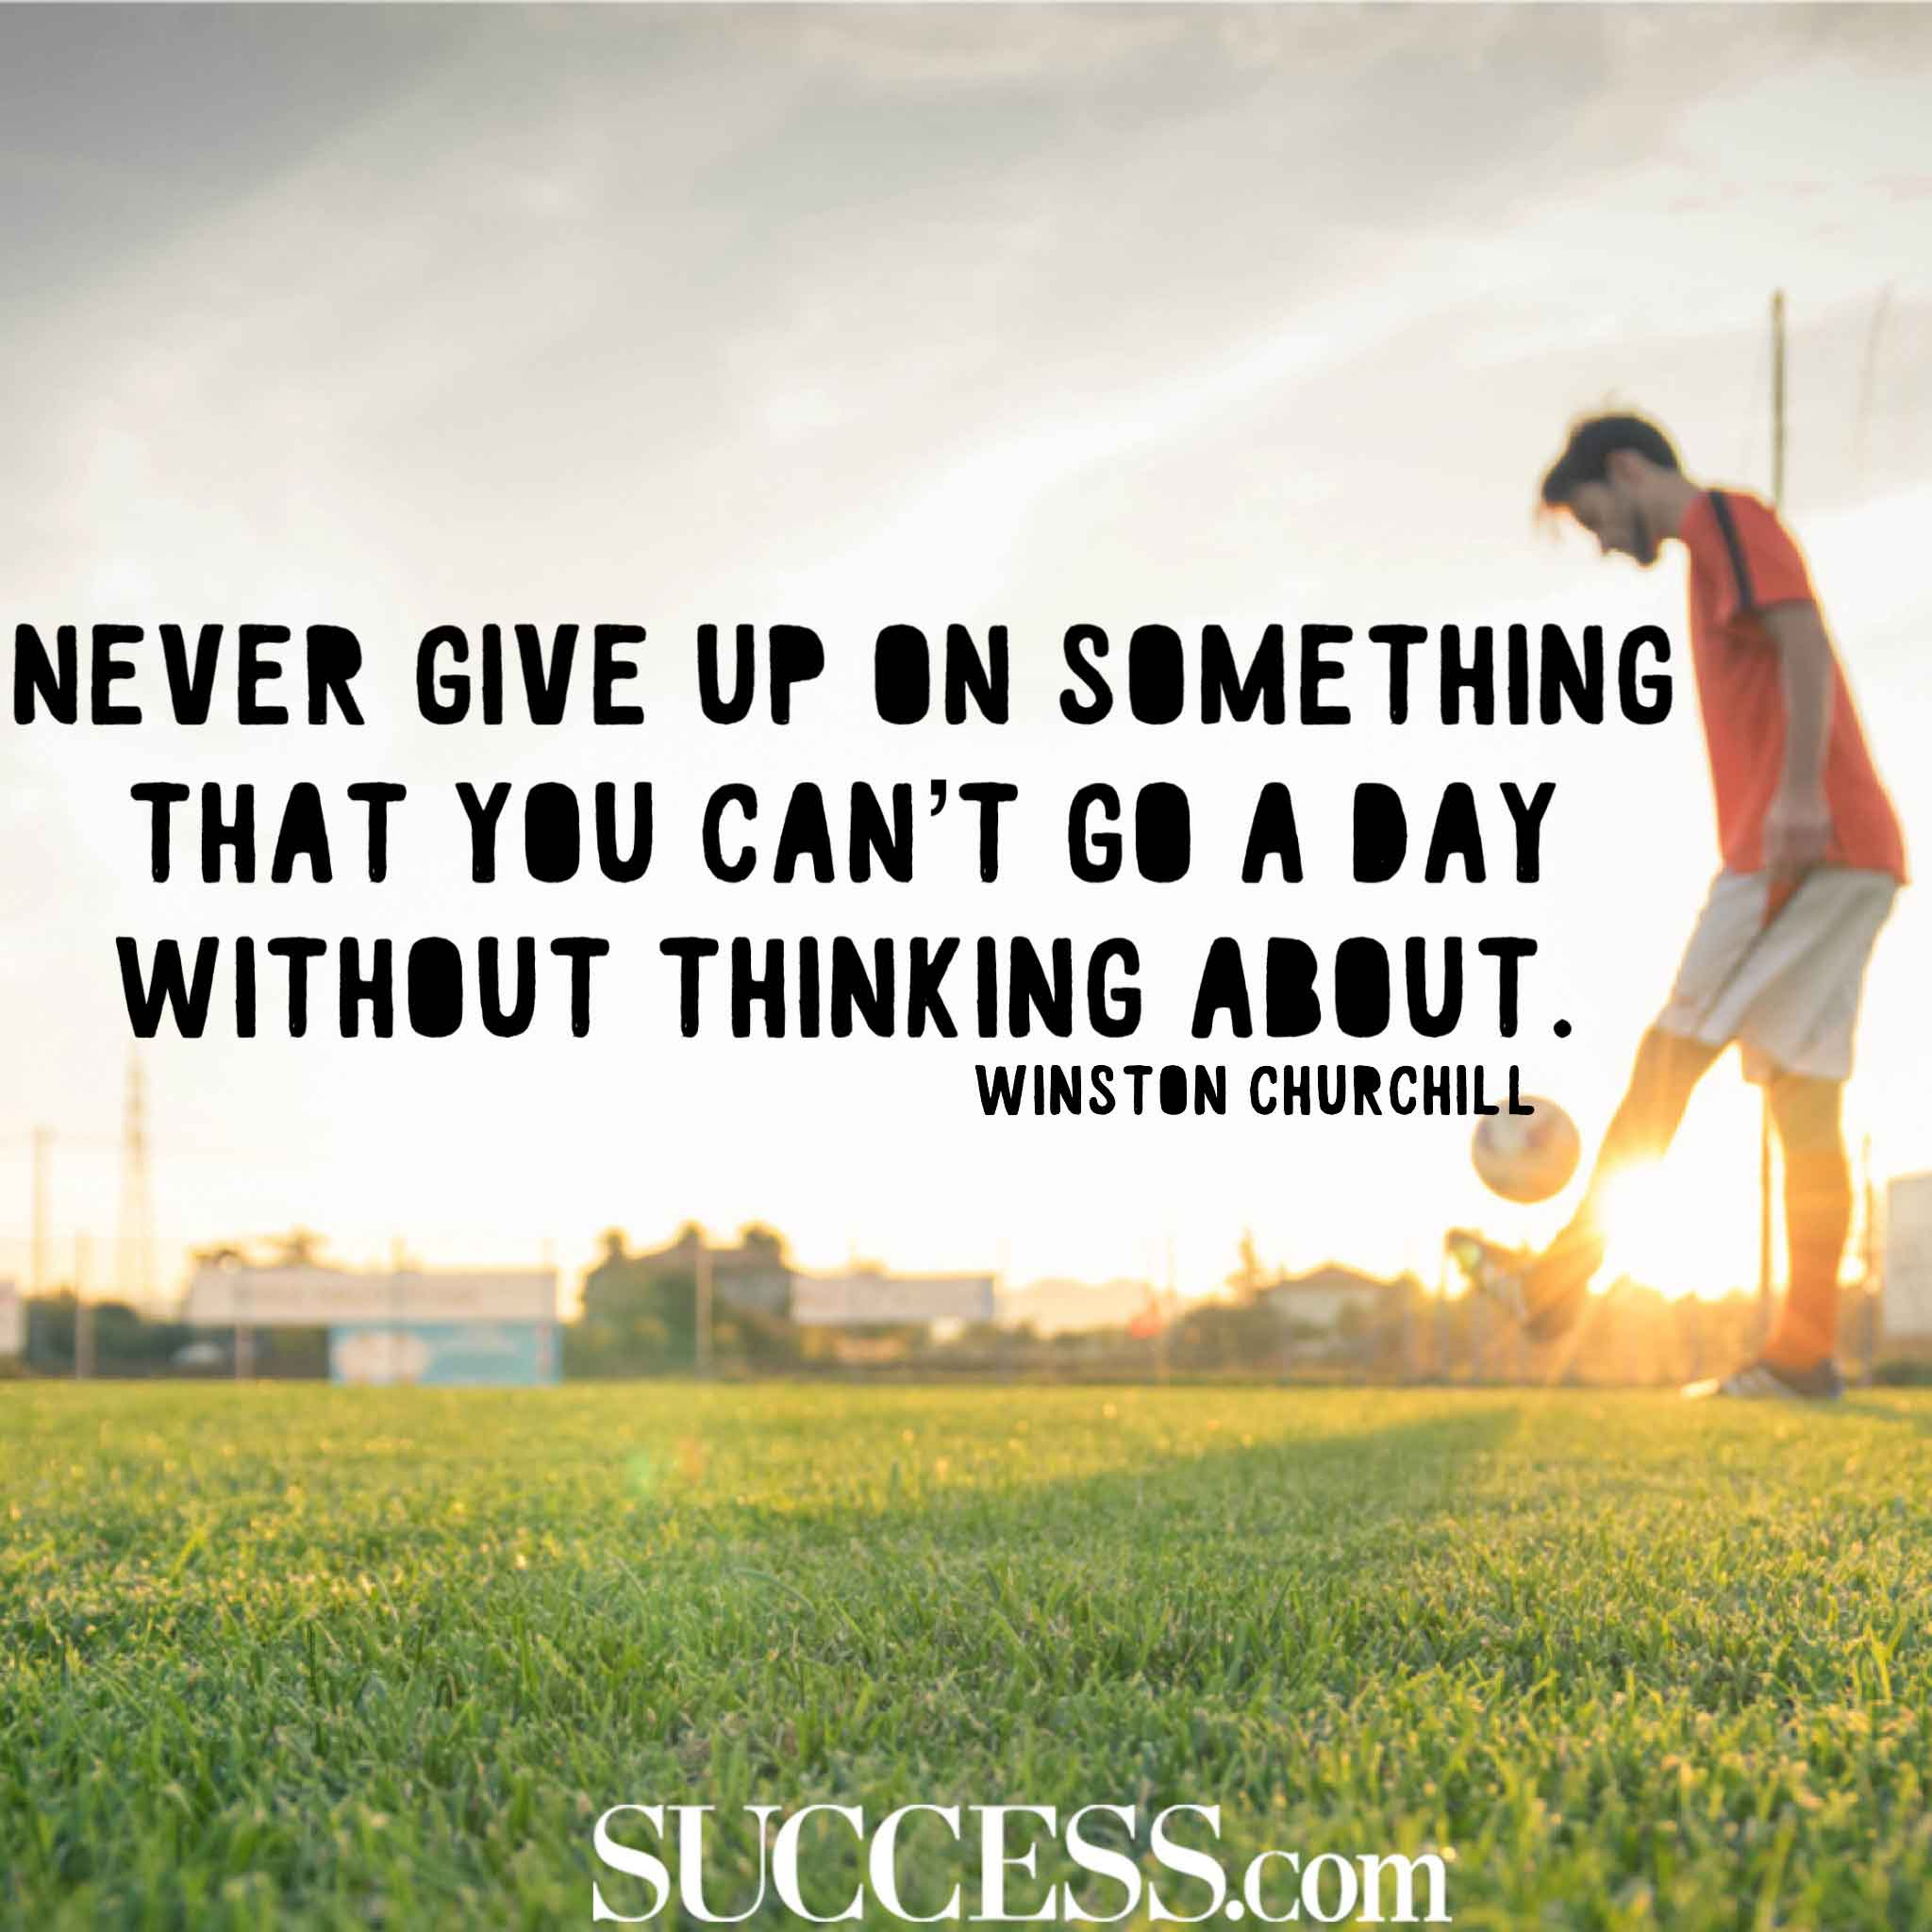 Quotes About Not Giving Up 15 Inspiring Quotes About Never Giving Up Quotes About Not Giving Up